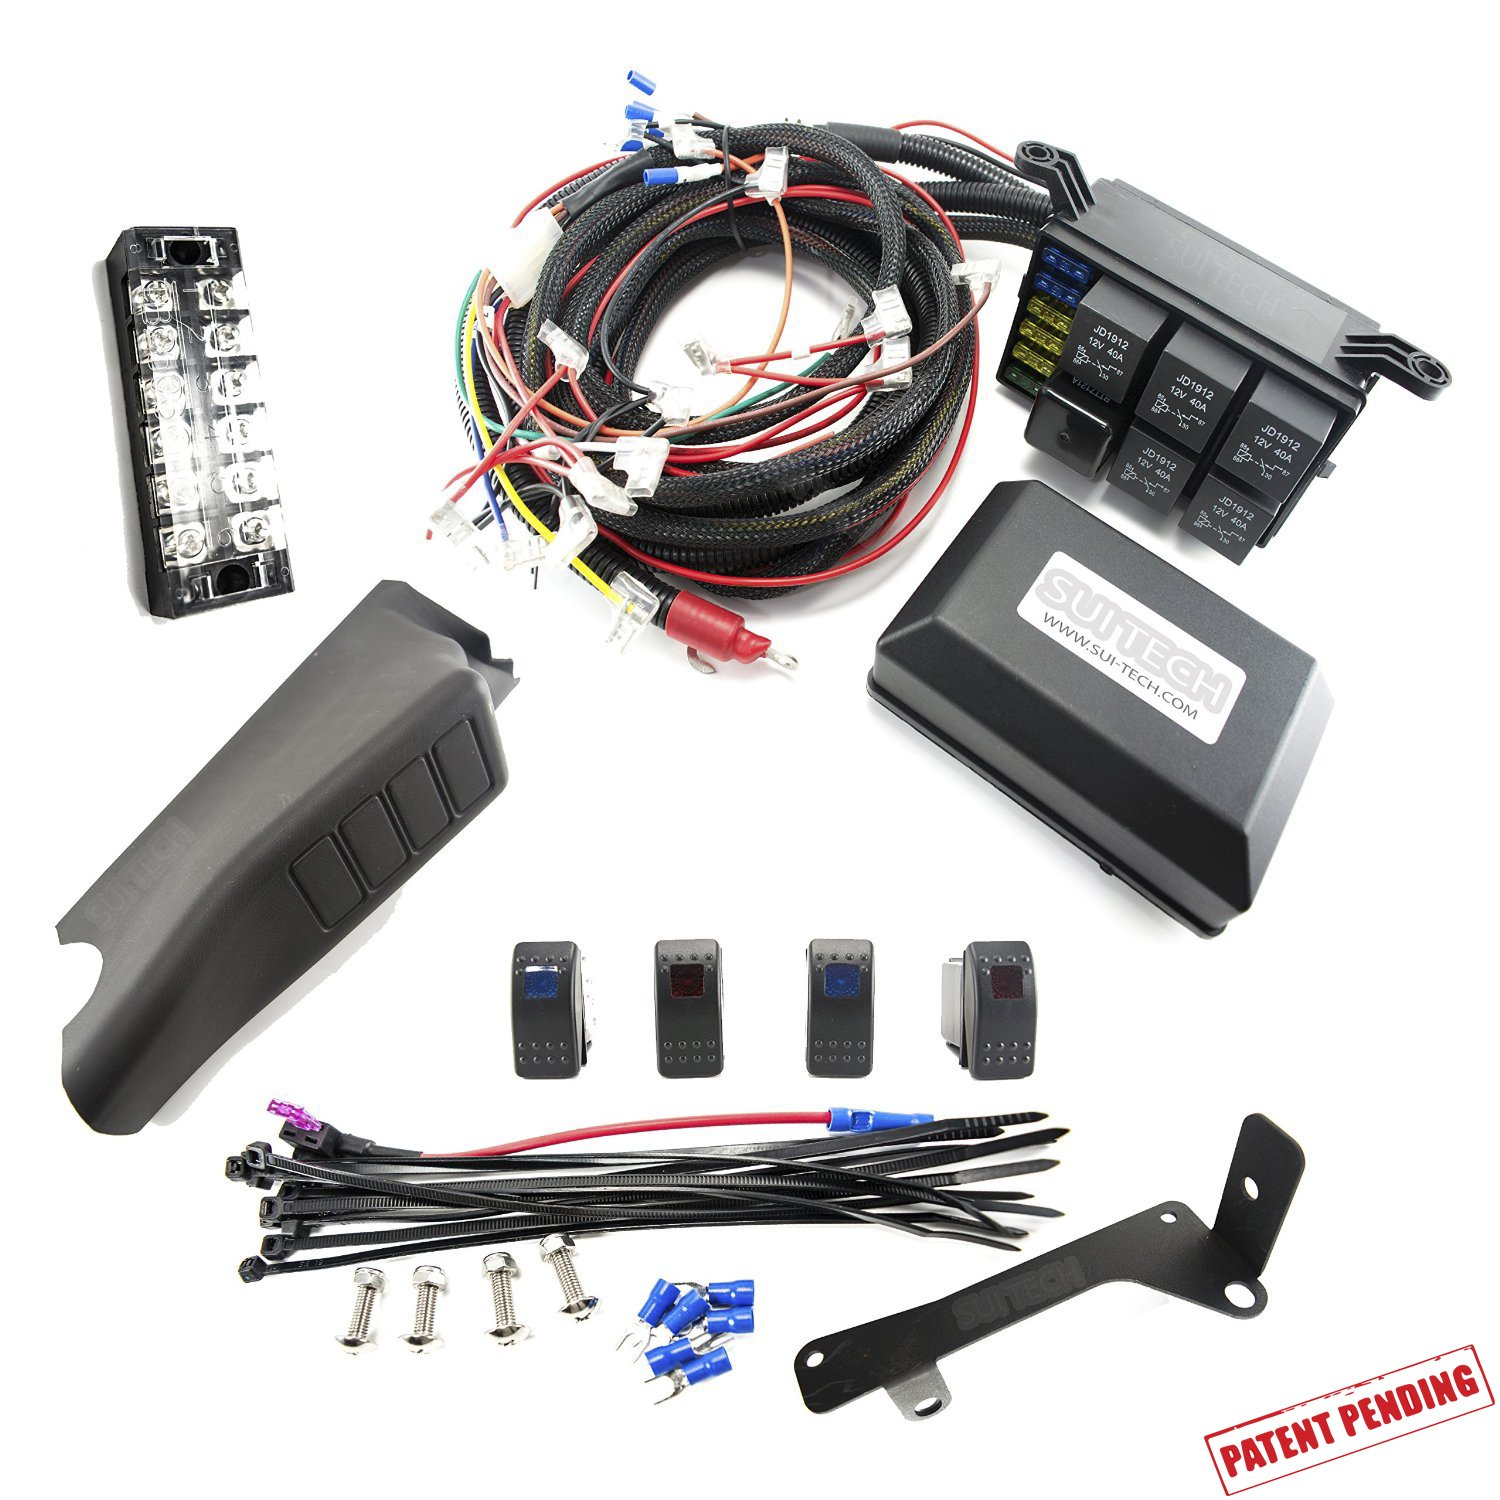 Amazon.com: Jeep JK Control Box - Electronic 6 Relay System Module - Wiring  Harness Kit With FREE 4 Rocker Switch Mount - Power up to 6 Accessories and  LED ...